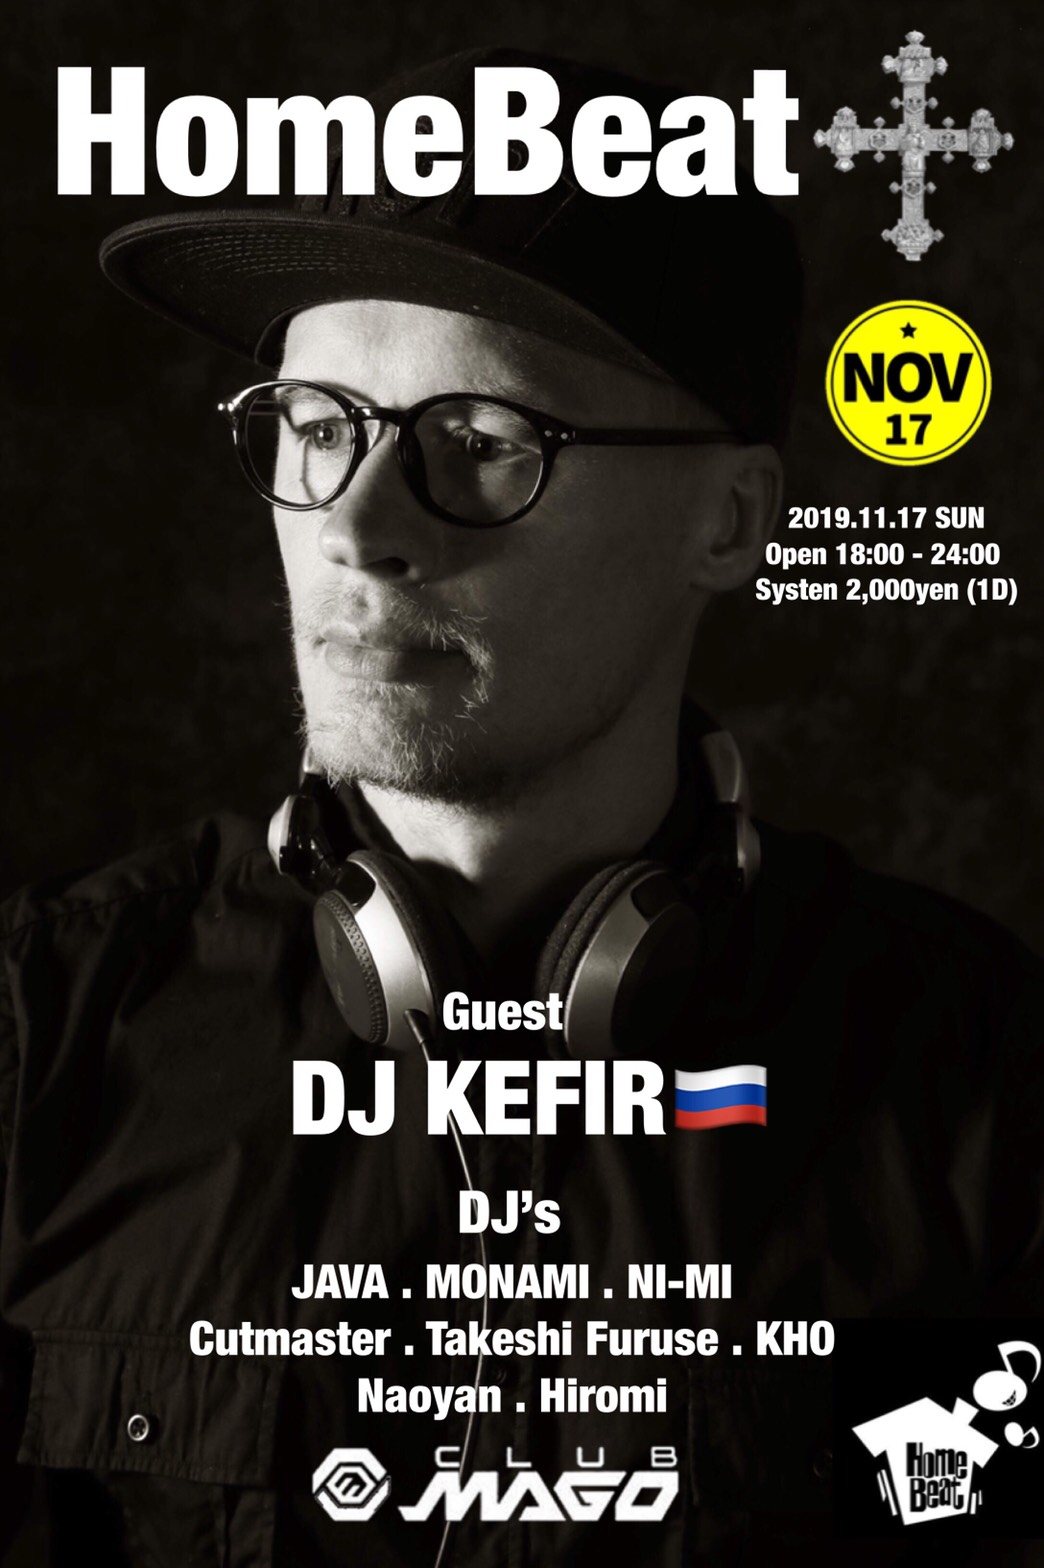 DJ KEFIR in MAGO House Music